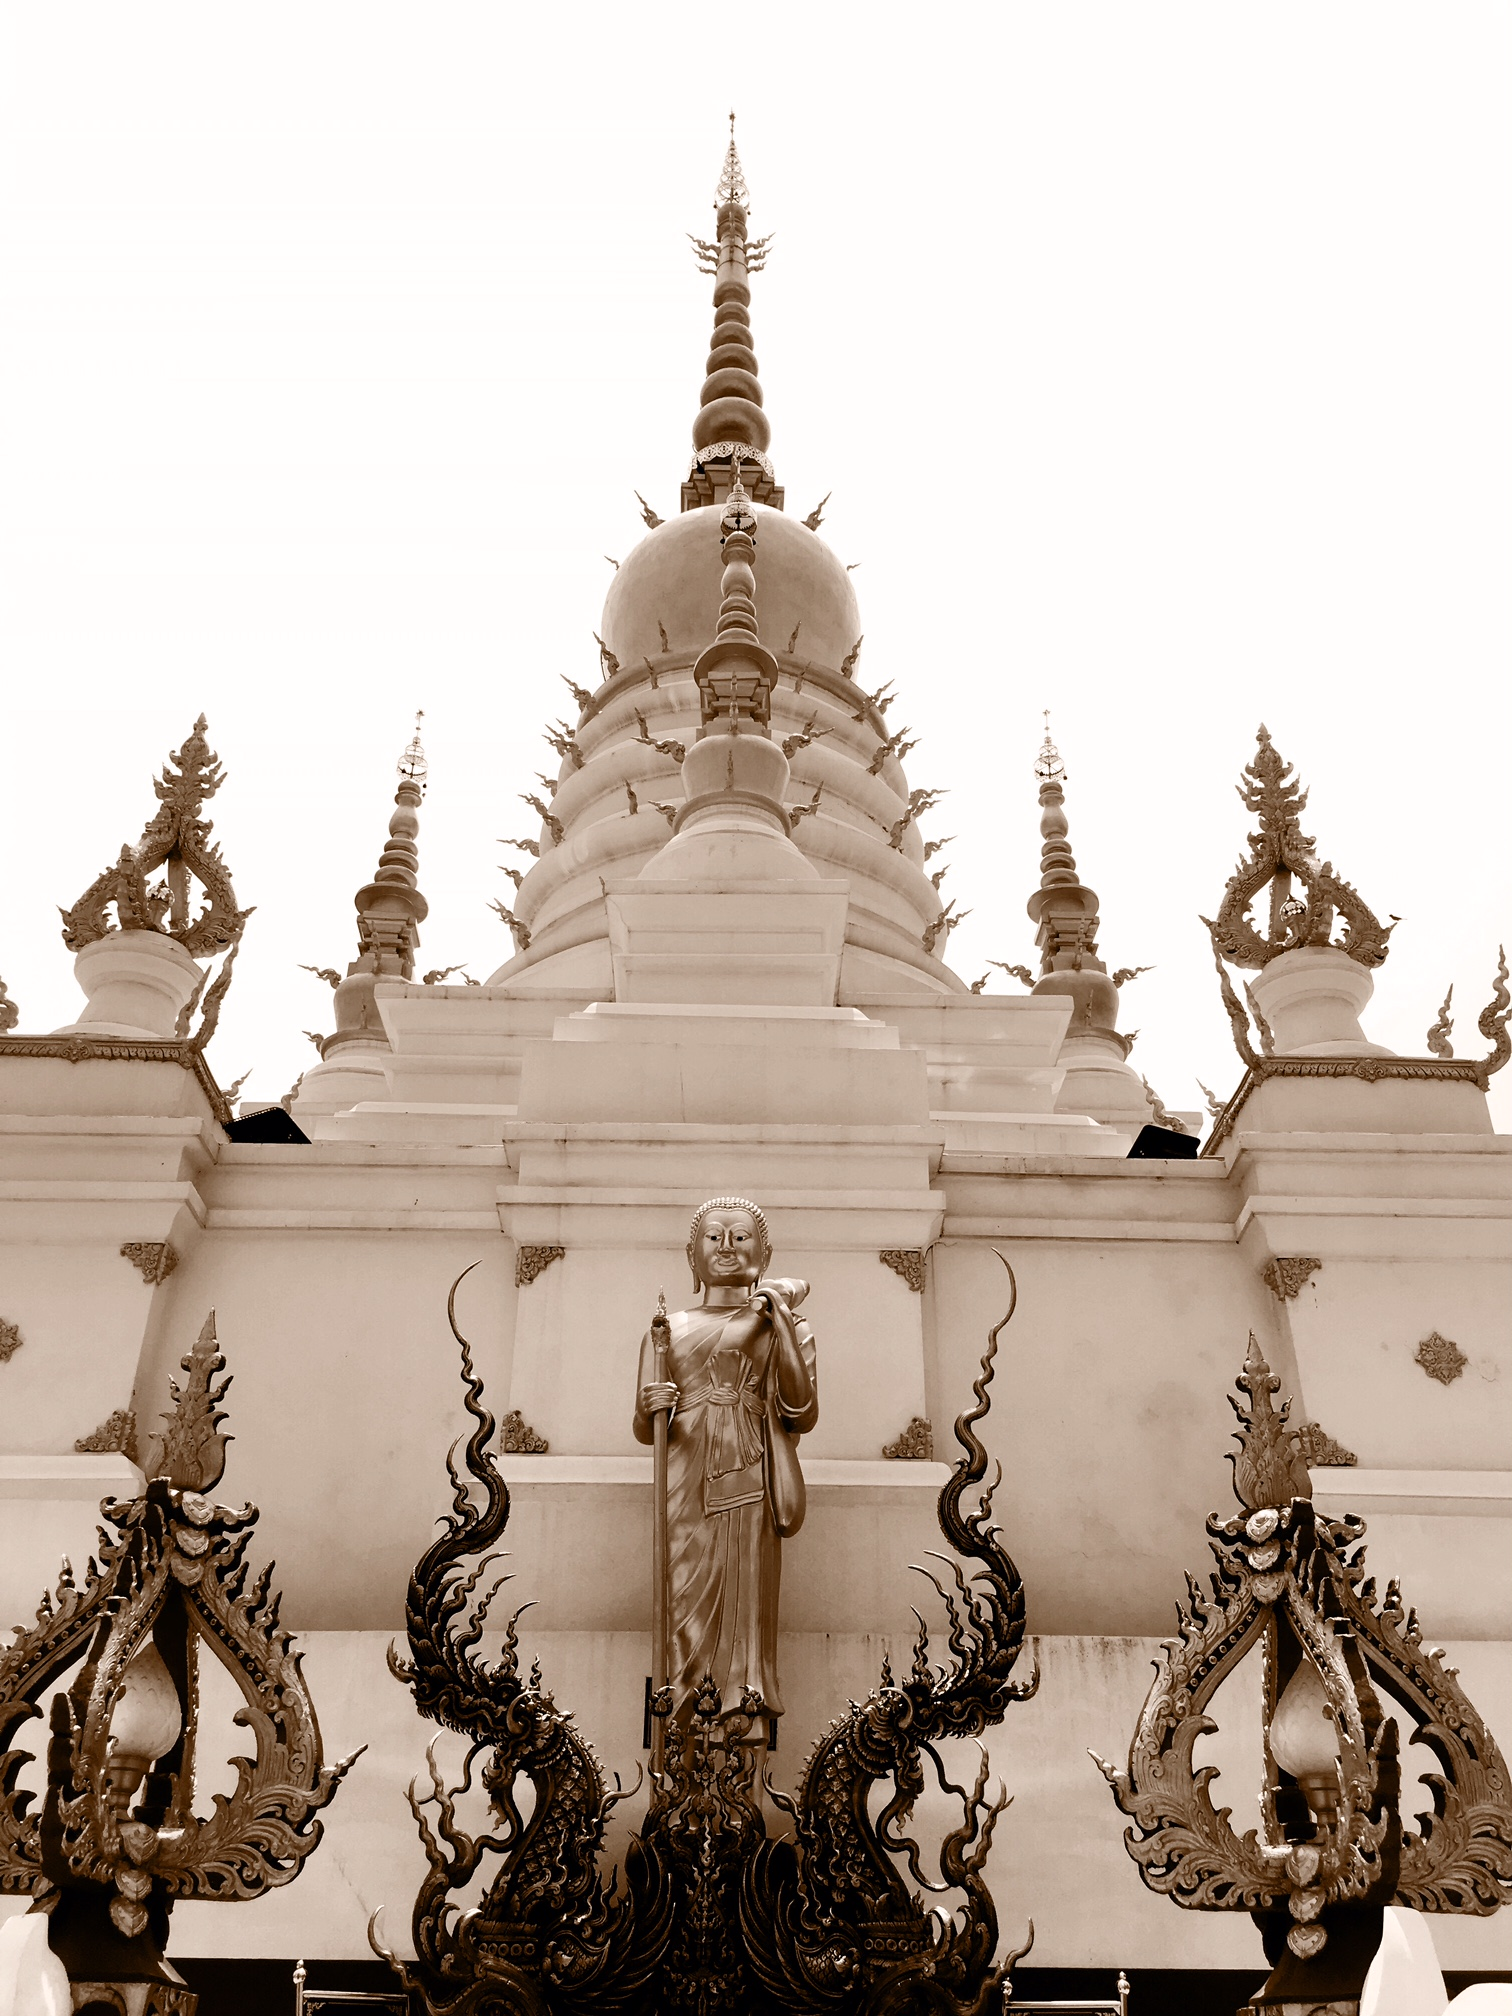 The stupa at Wat Rong Suea Ten